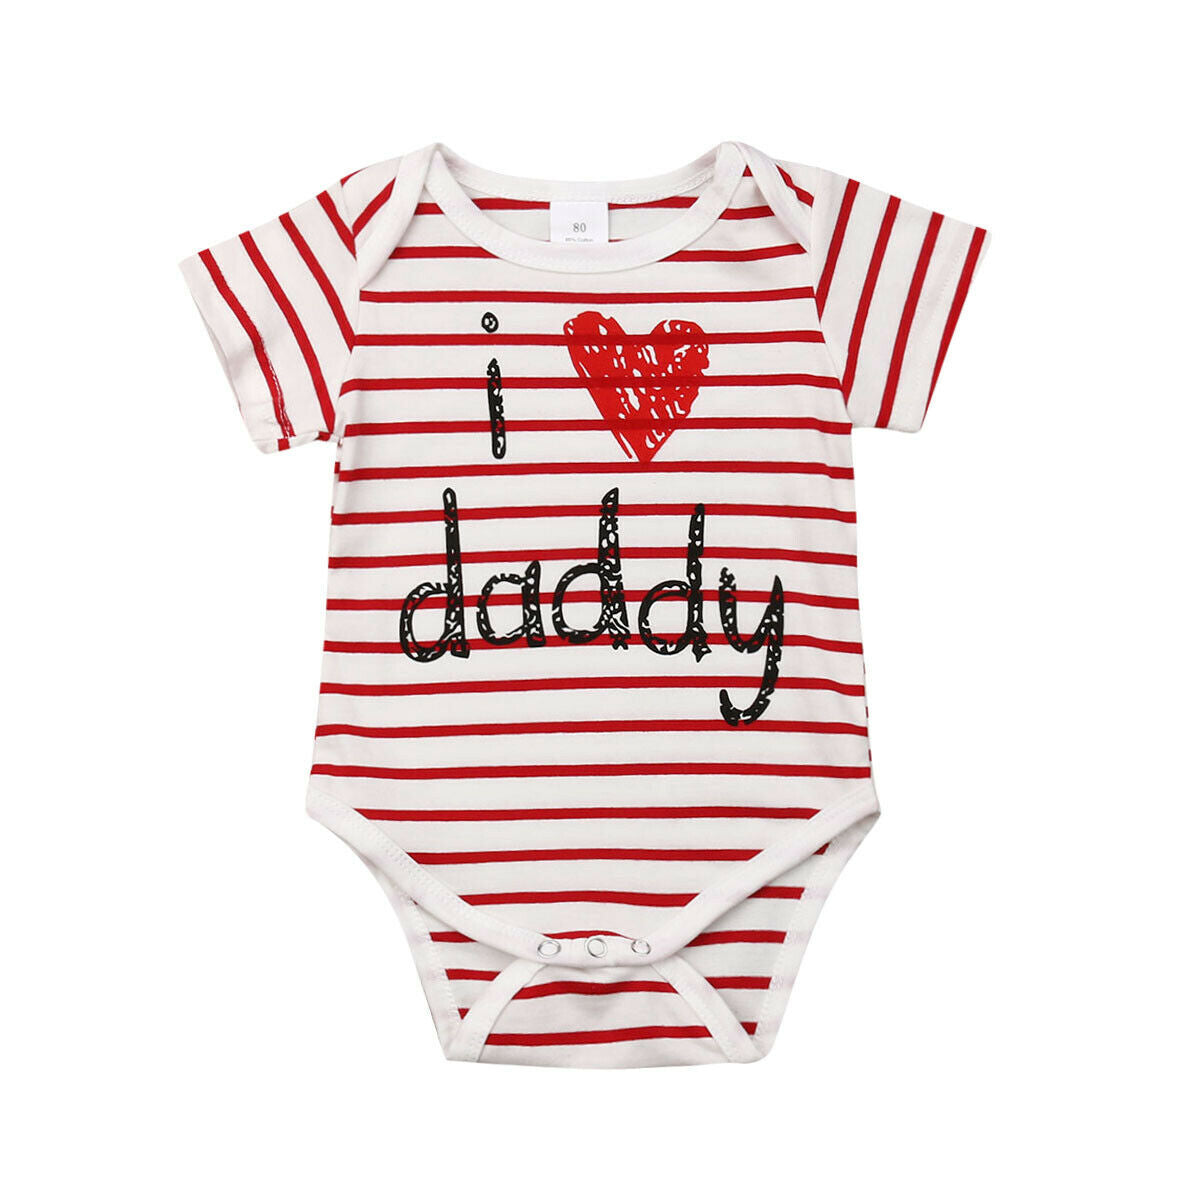 Newborn Baby Daddy Love Romper